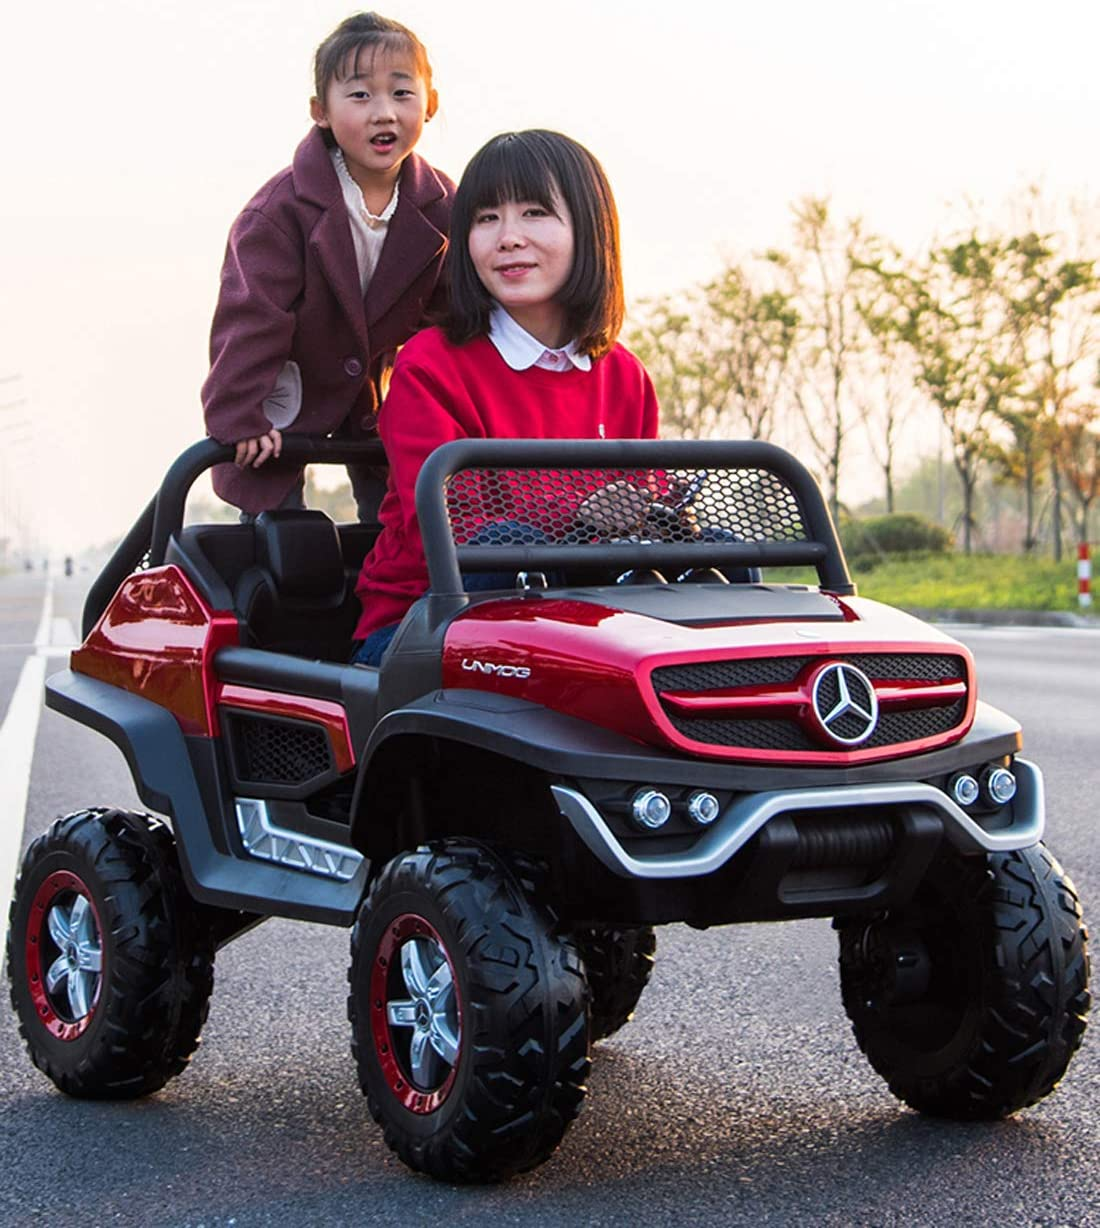 Mercedes Two Seater Unimog Ride On Electric Toy Car for Kids 12V LED Lights MP3 RC Parental Remote Controller Suitable for Boys Girls Black: Toys & Games - Amazon.com